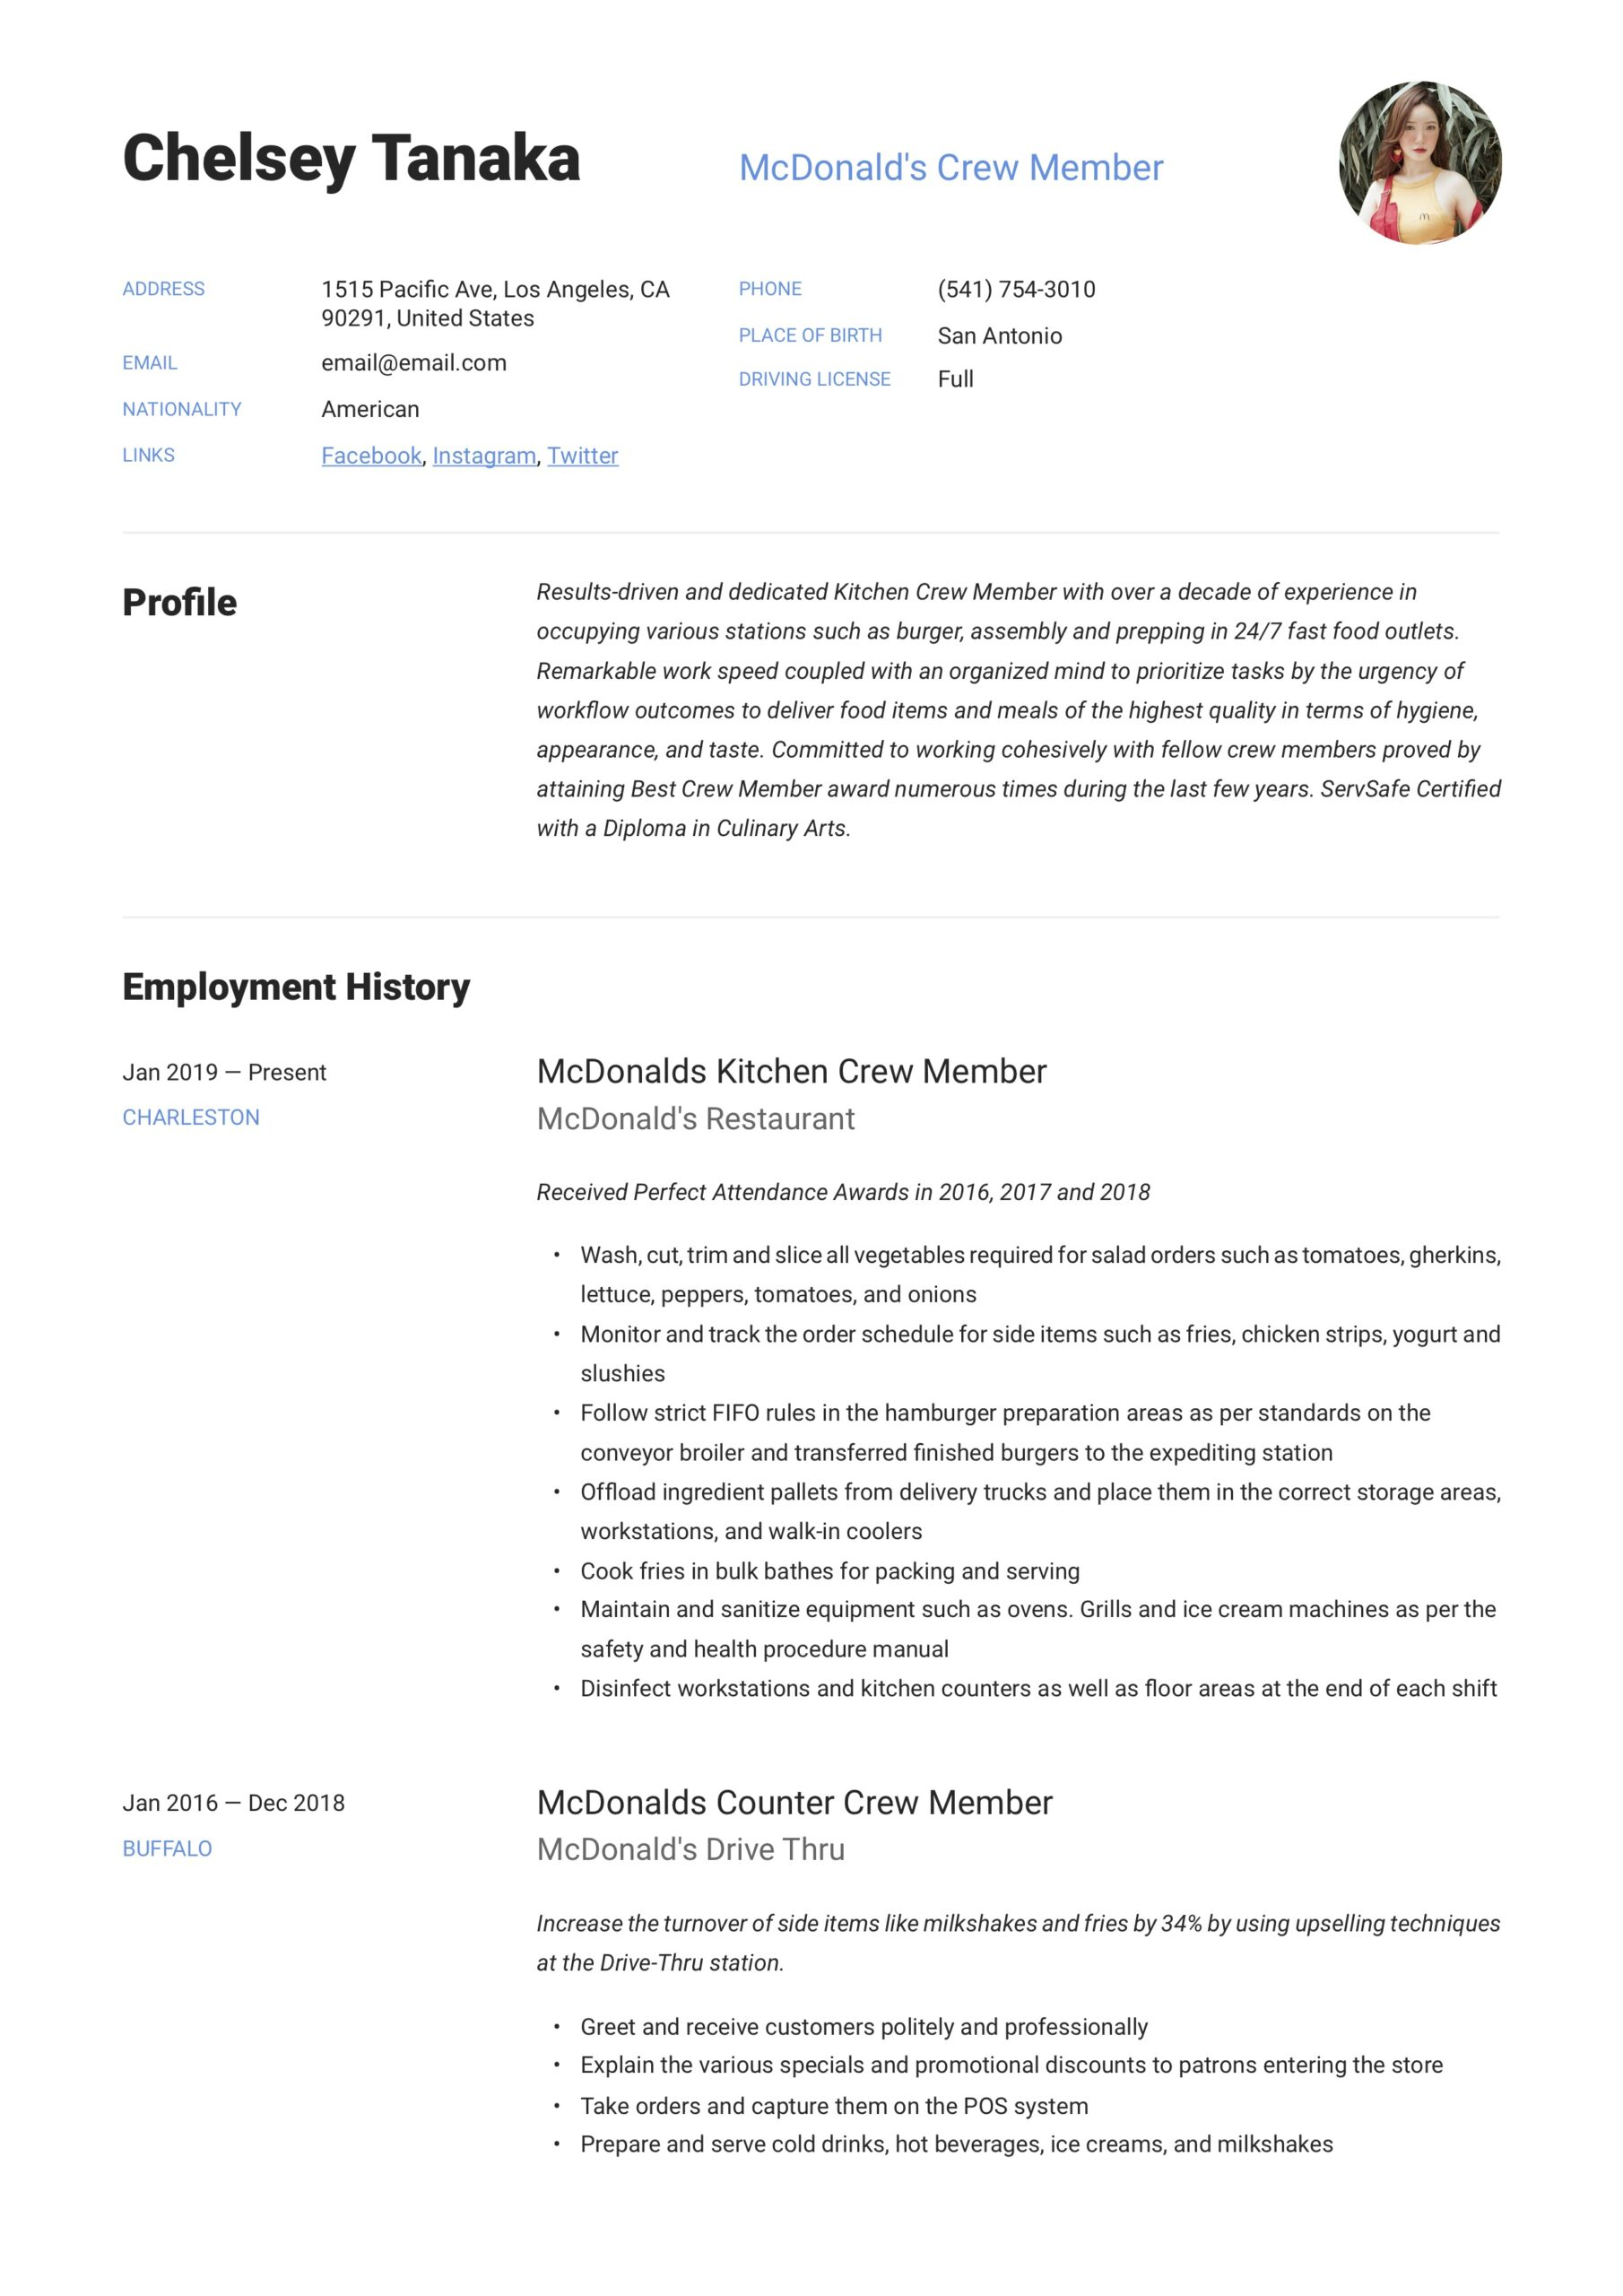 mcdonalds crew member resume writing guide examples maintenance medical coding experience Resume Mcdonalds Maintenance Resume